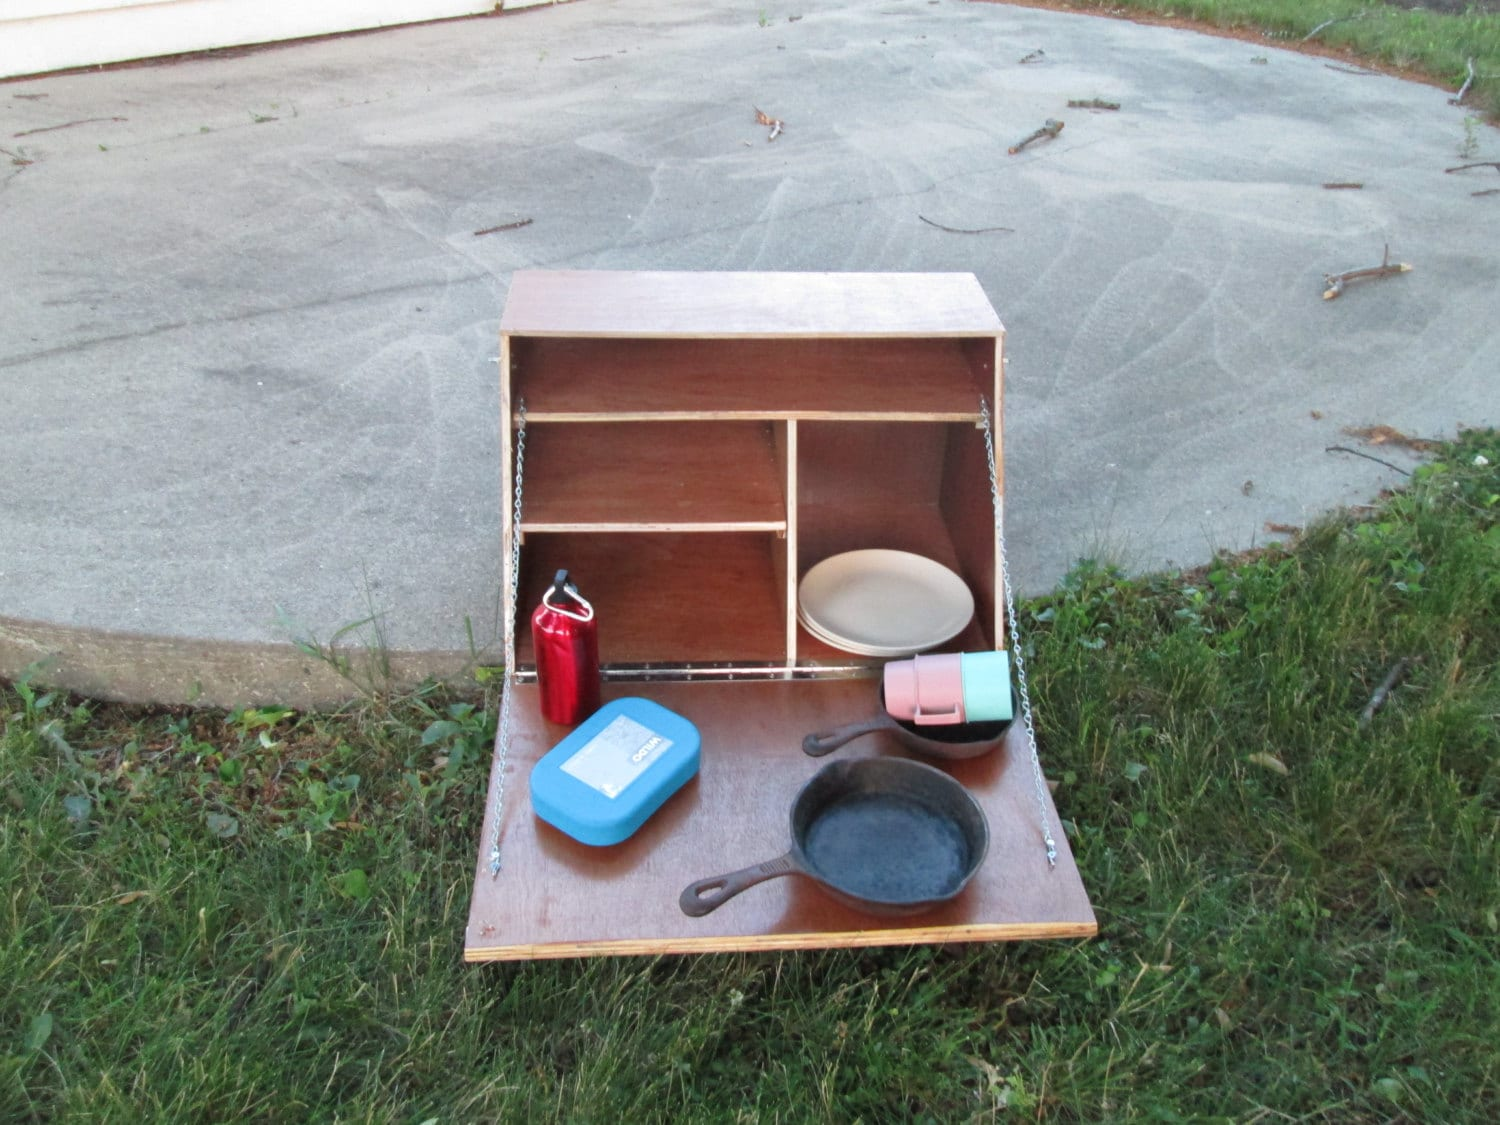 Camping Cupboard Camp Kitchen Tailgating | Etsy